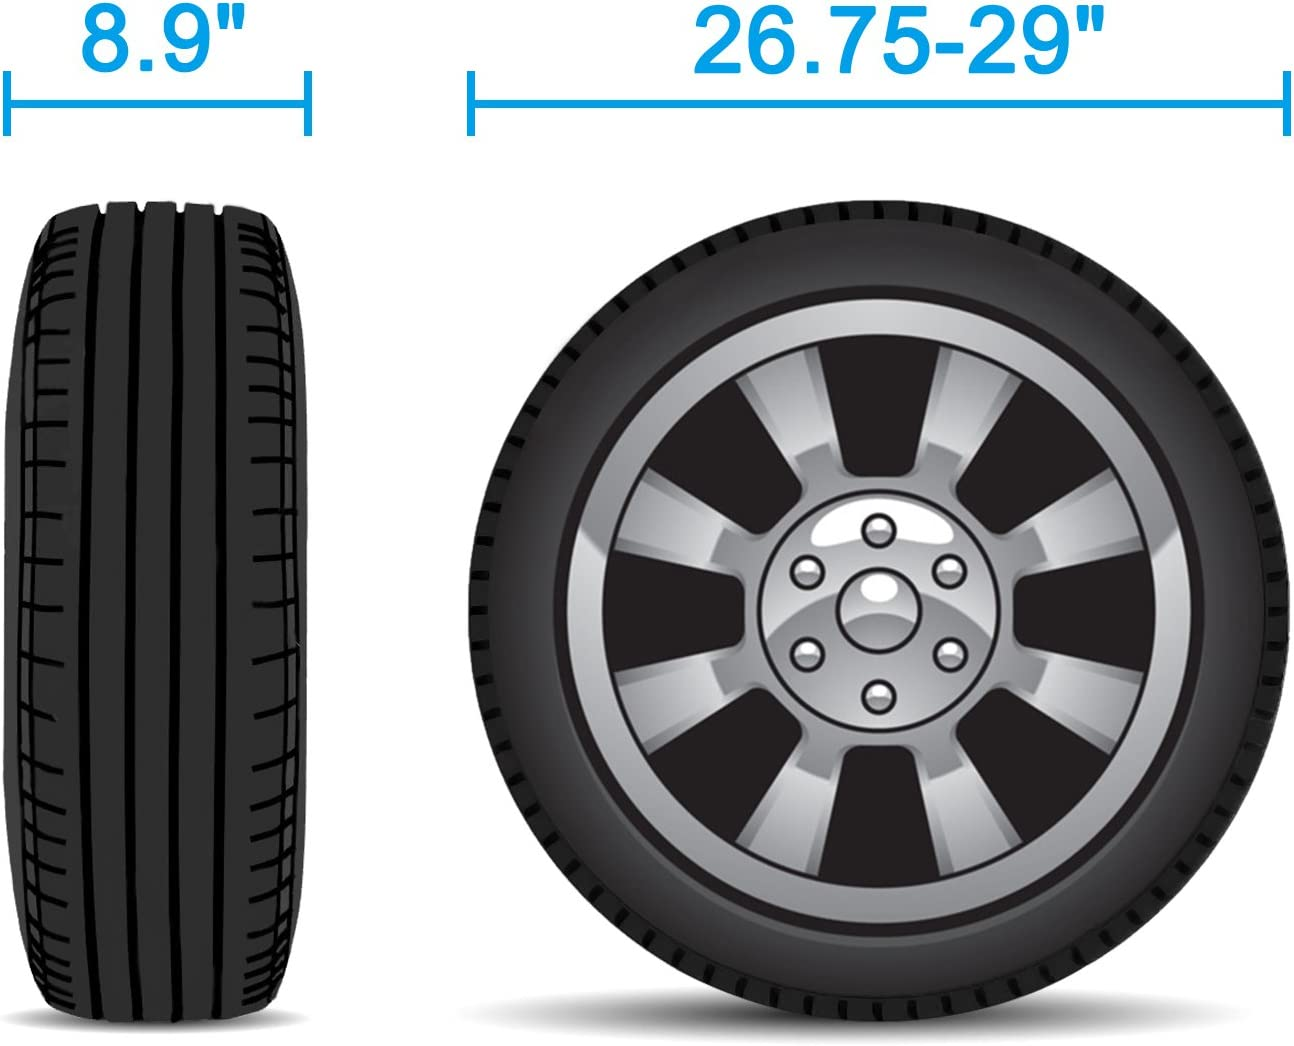 Fits 26.75-28.9 Tire Diameters Waterproof UV Coating Tire Protectors for Trailer Truck Camper Auto RVMasking Tire Covers for RV Wheel Set of 4 Extra Thick 5-ply Motorhome Wheel Covers